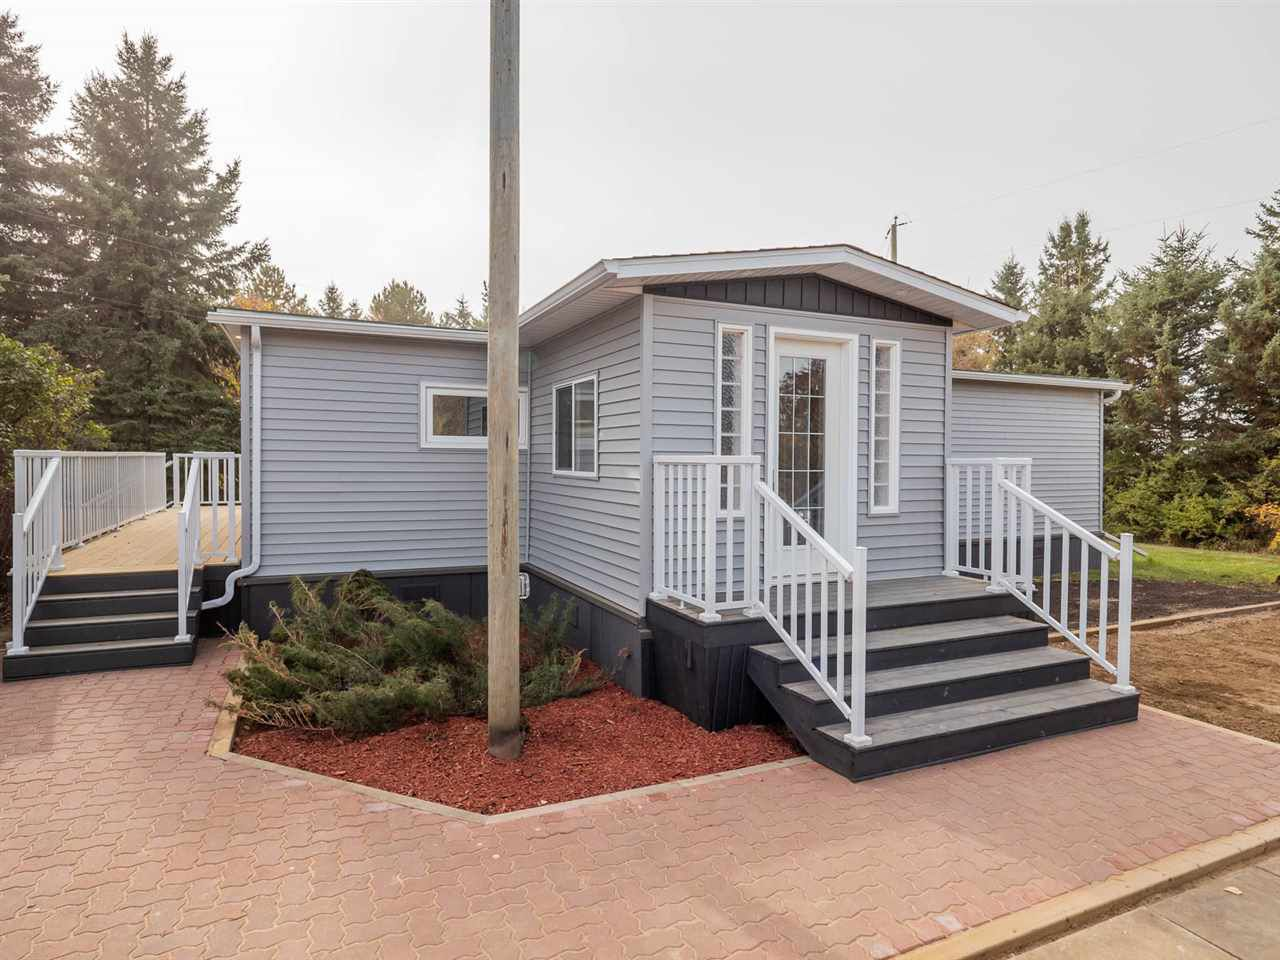 Main Photo: 60009 Rge Rd 192: Rural Smoky Lake County Manufactured Home for sale : MLS®# E4131977